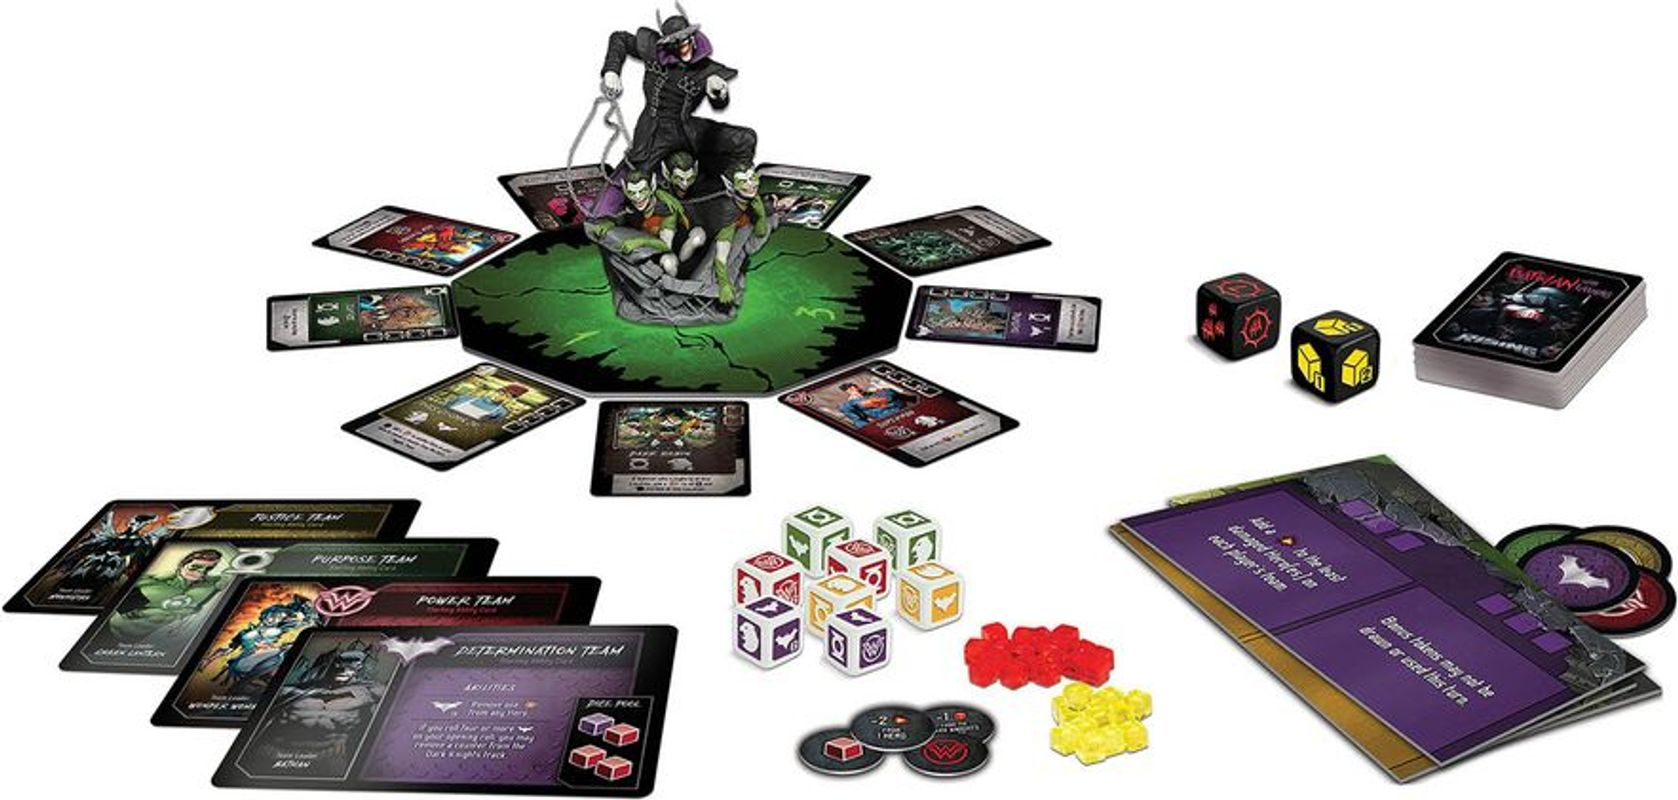 The Batman Who Laughs Rising components